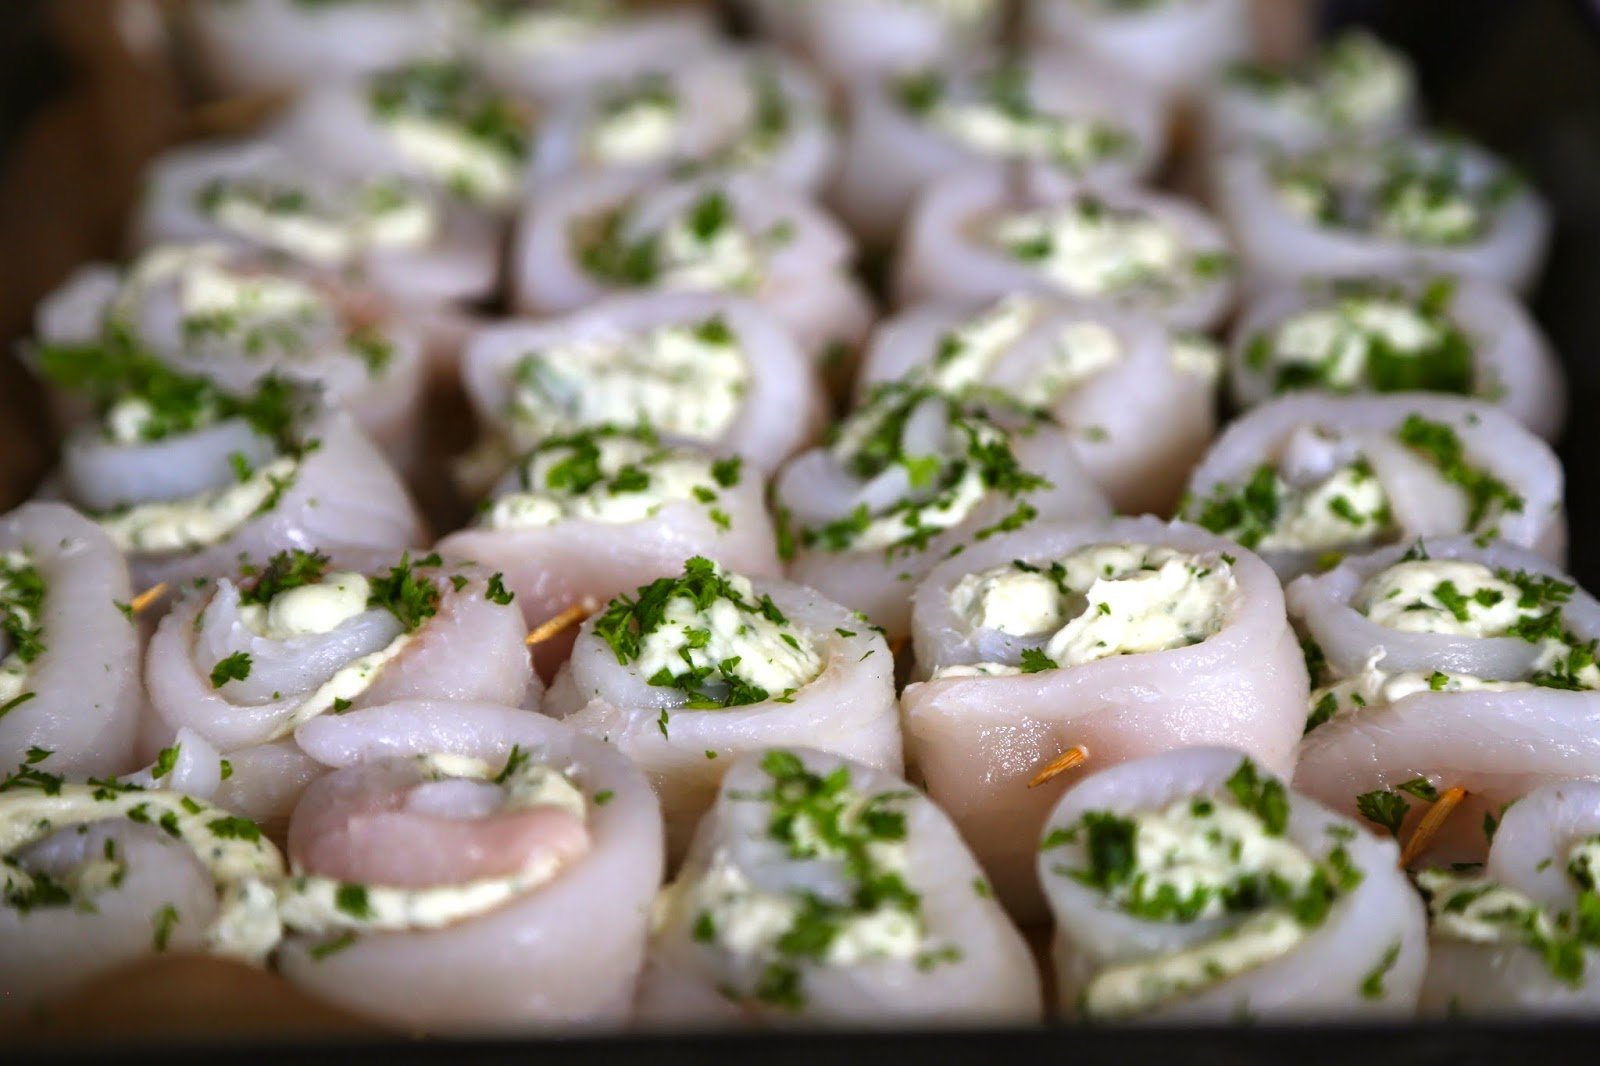 rolled lemon sole fillets stuffed with raki and chervil fish mousse